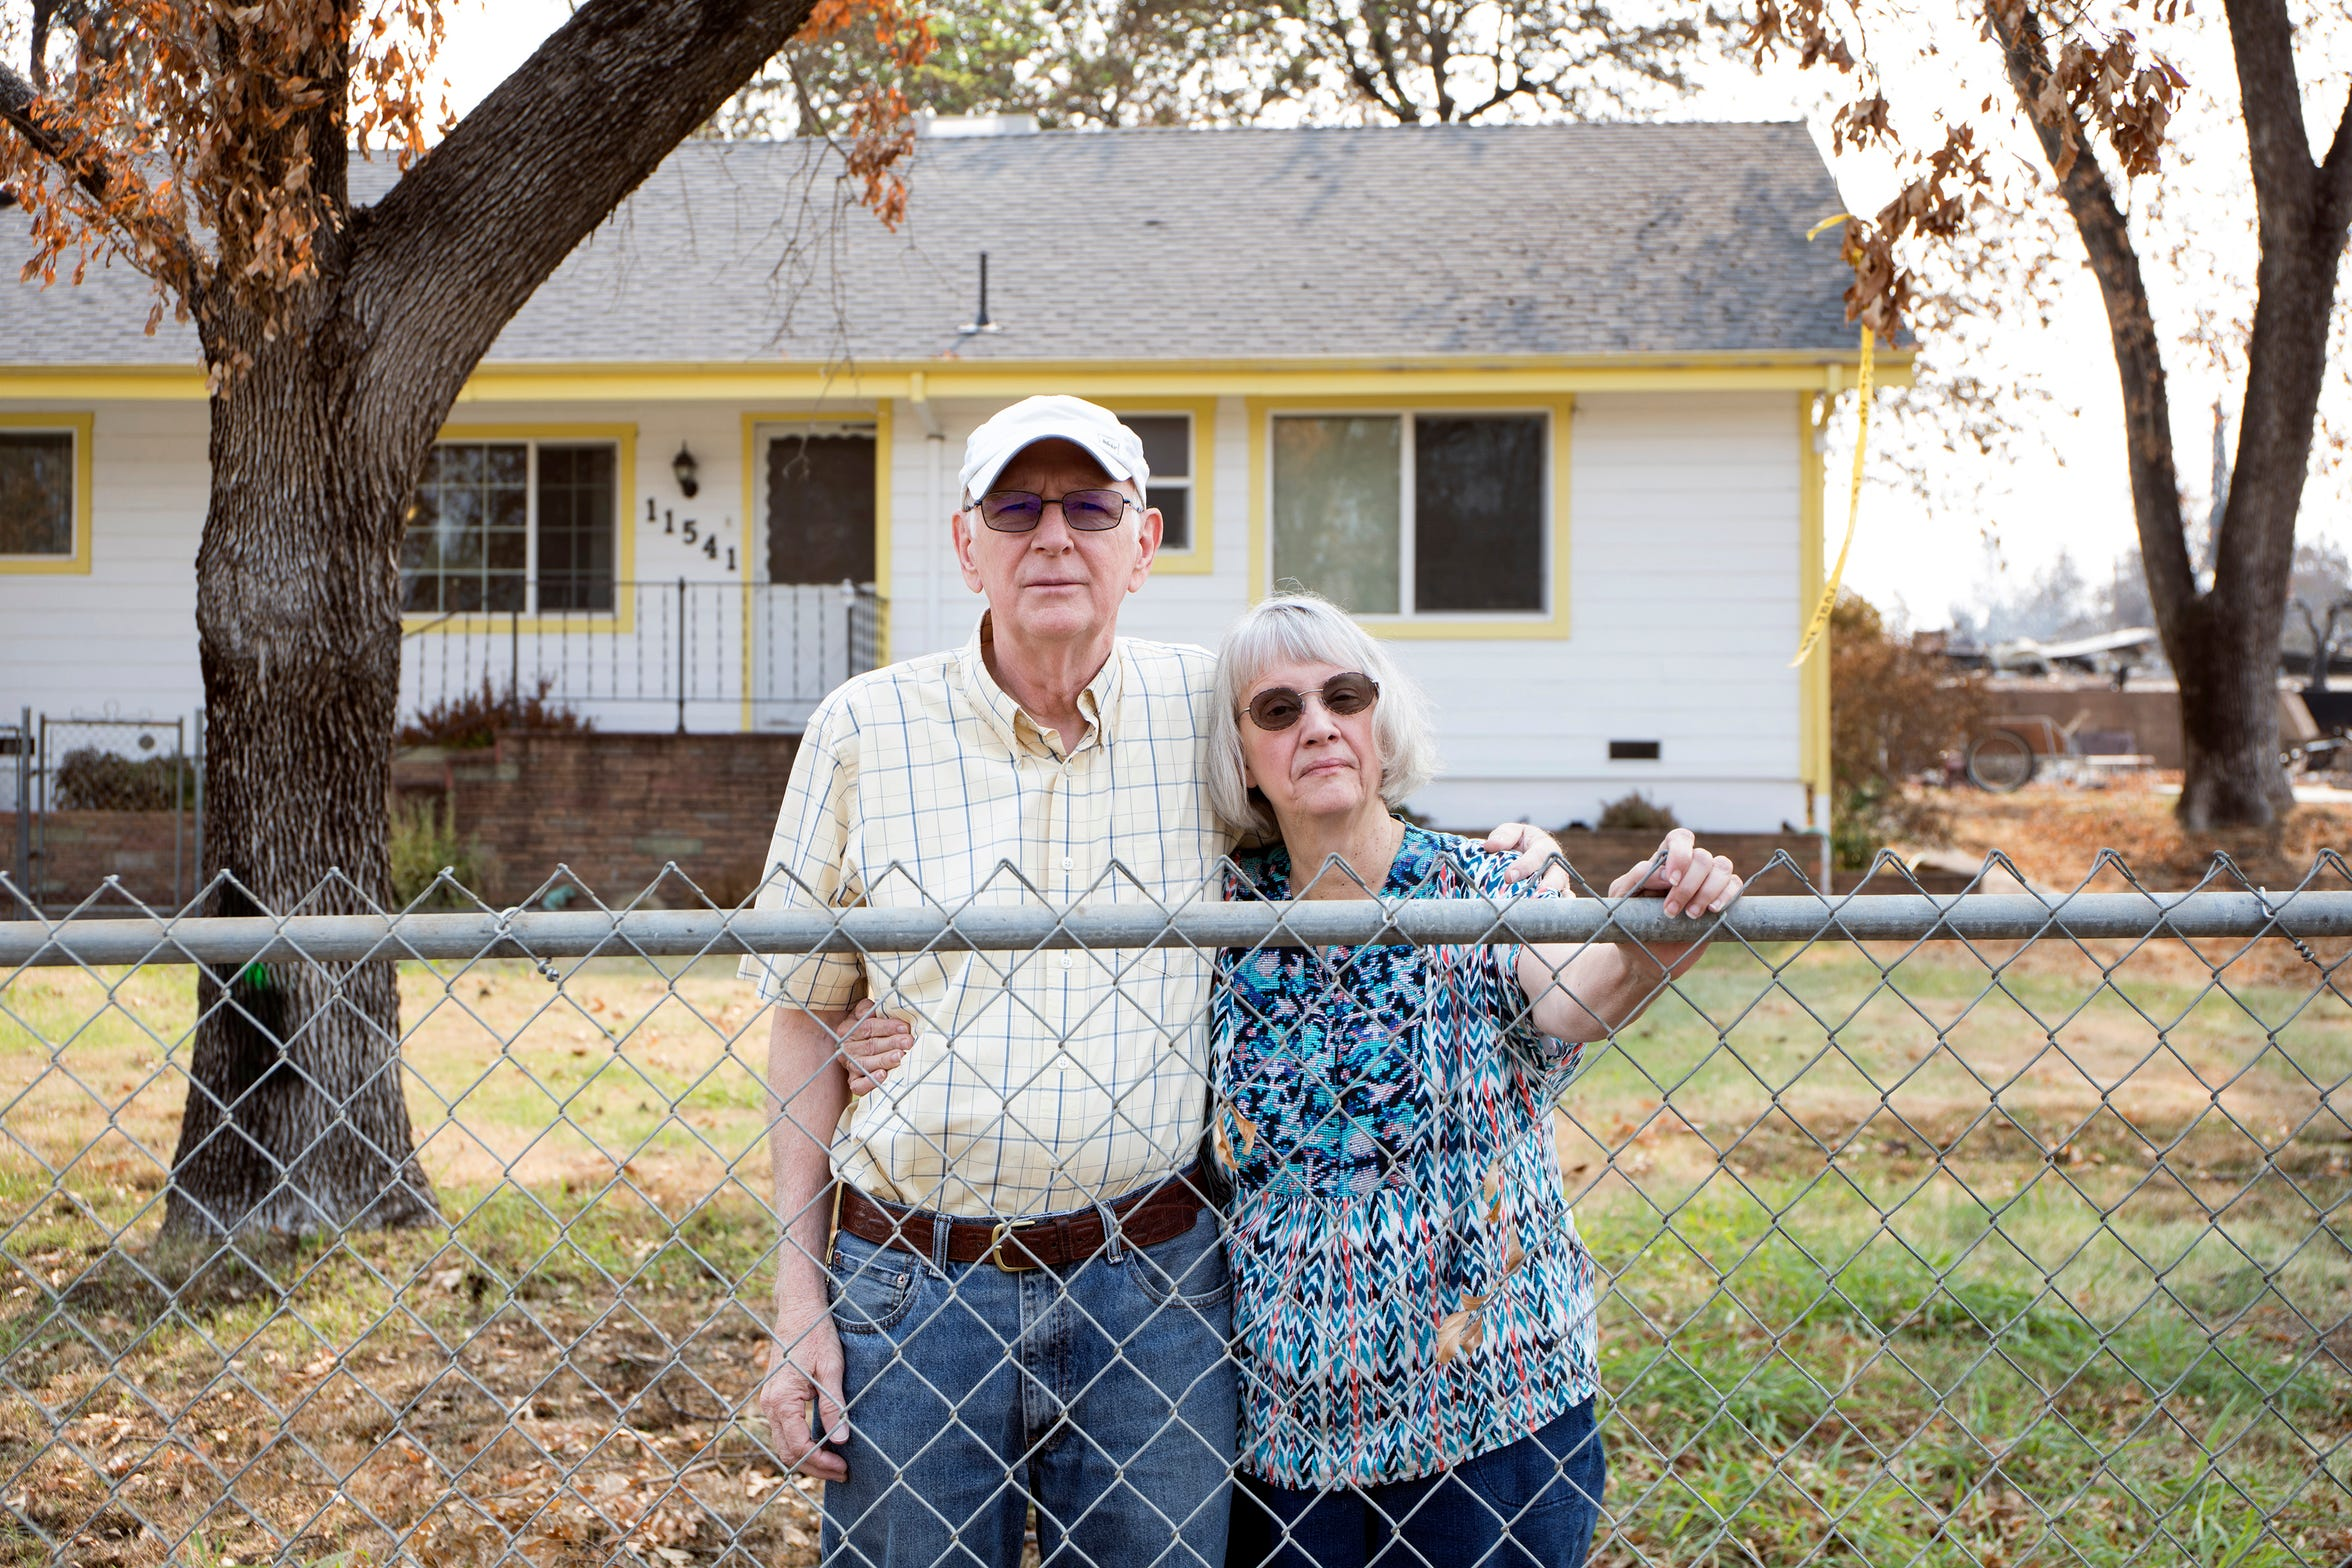 From left Jerry Thomas, 70 and his wife Barbara Thomas, 68 are photographed in front of their home following the Carr fire in Keswick, Calif., Tuesday, August 21, 2018.  Their home is one of only two remaining in their neighborhood which was in the heart of the tornado fire.